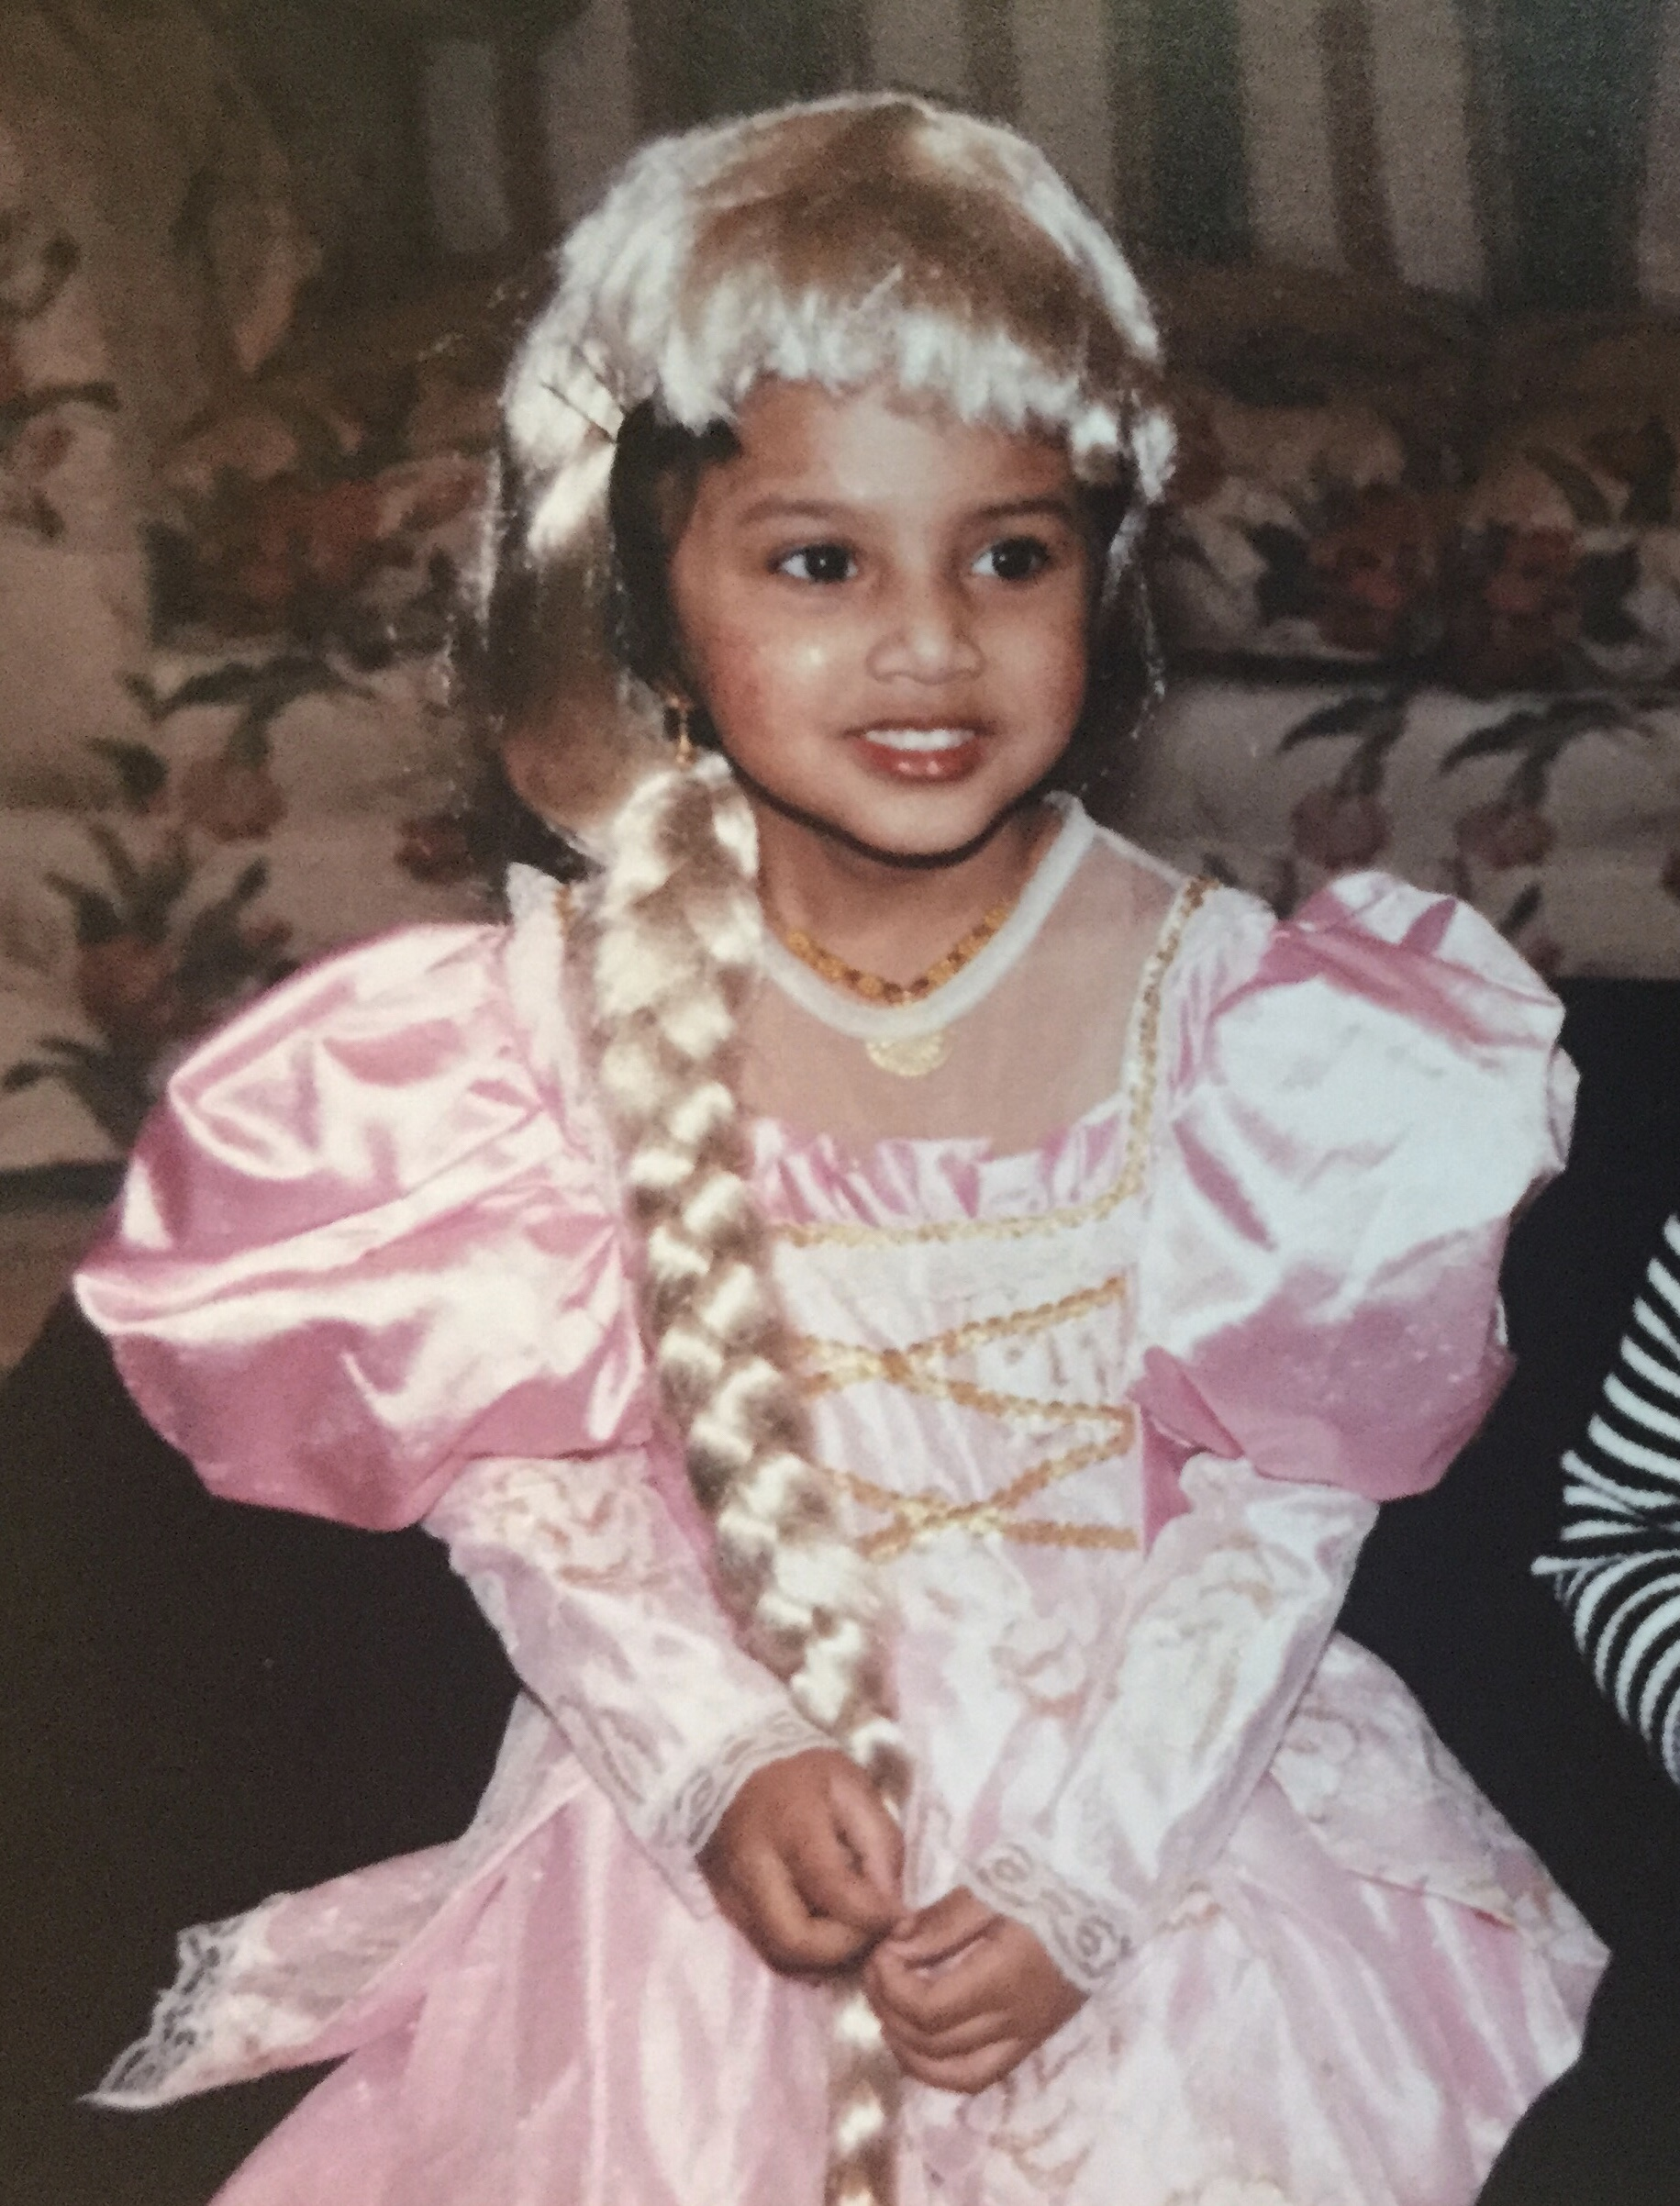 Stock Costume? Check. Hair Isnu0027t A Racial Stereotype But Central To The  Character? Check. My Brown Self Dressed As A White Princess? Totally Ok.